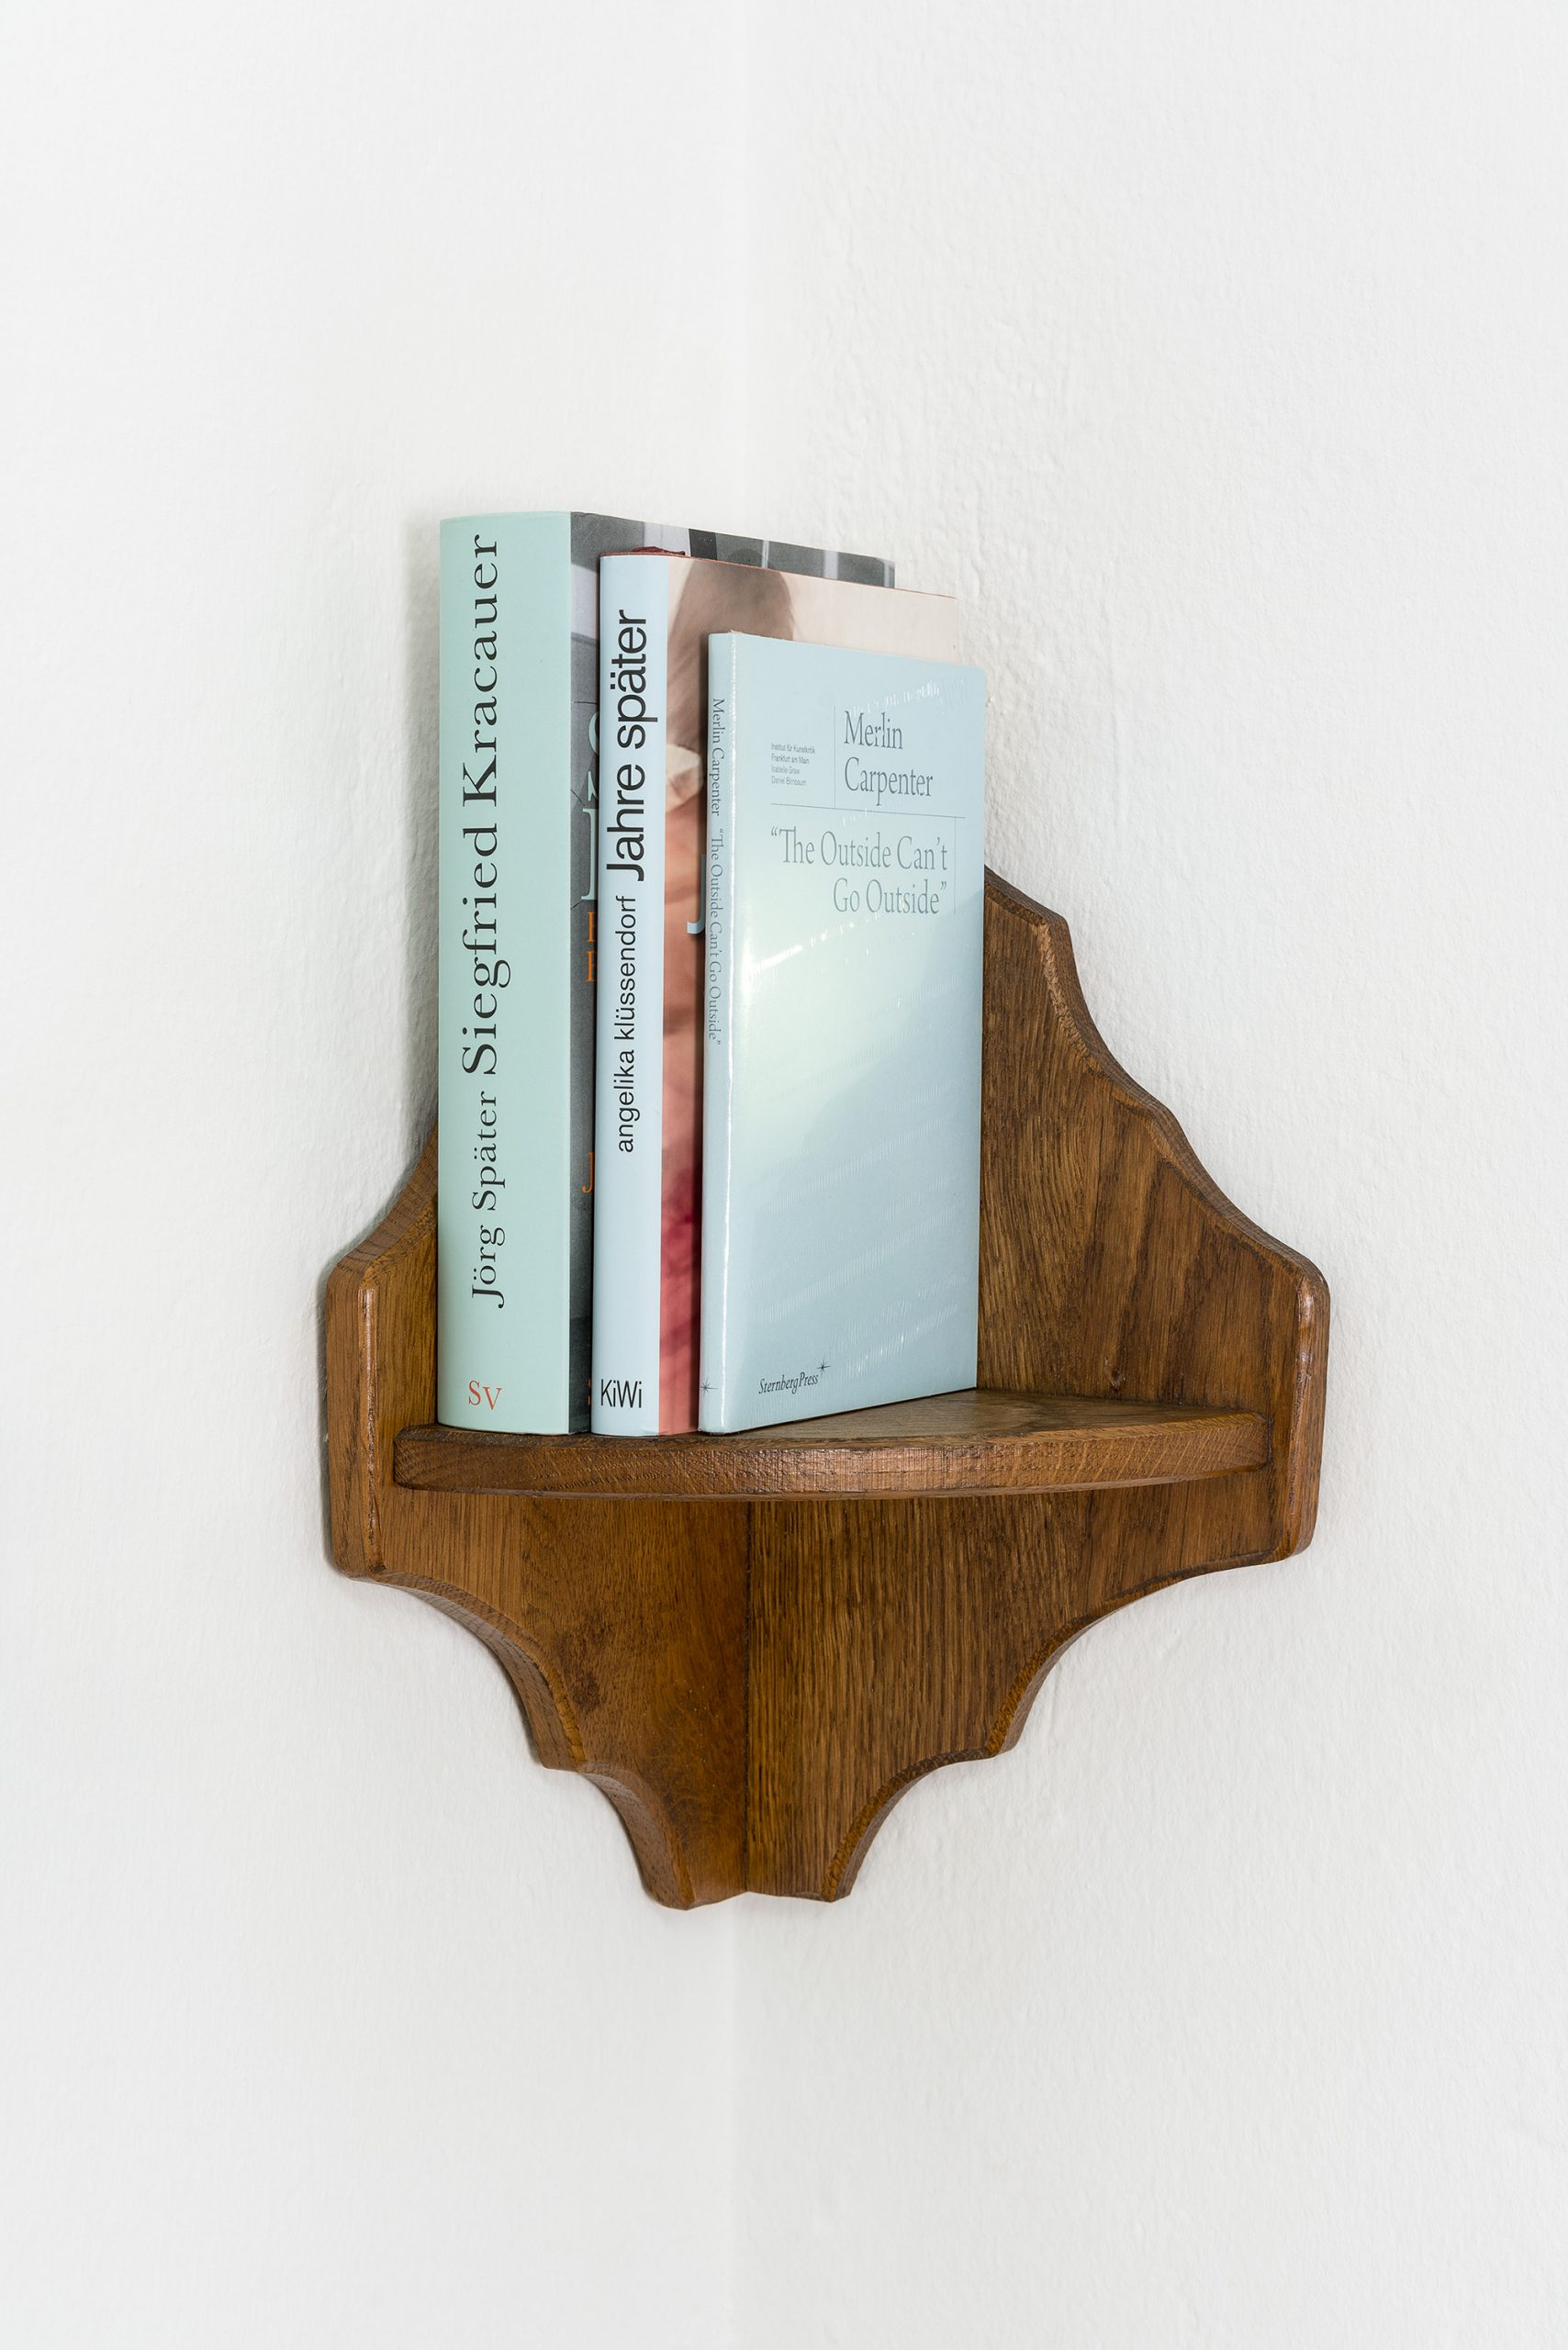 EMPFEHLUNGEN VON ISABELLE GRAW 2020 40 x 30 x 15 cm Corner shelf with three books